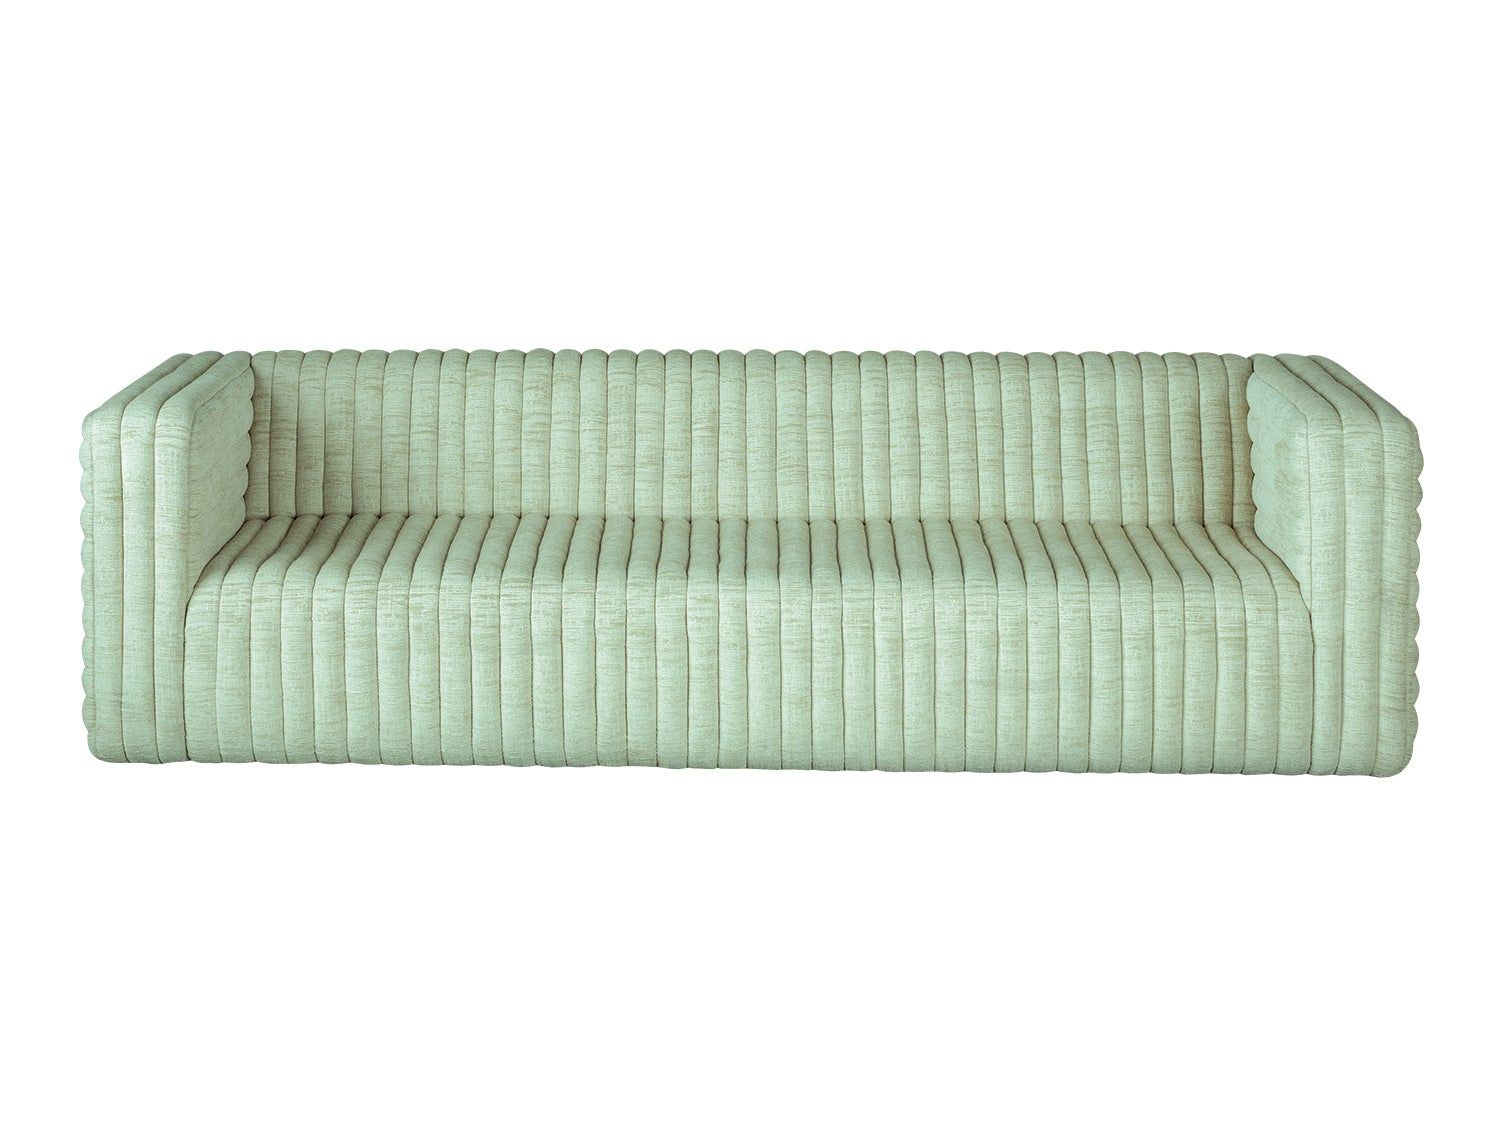 Ribbed Decor Is Making a Splash This Summer